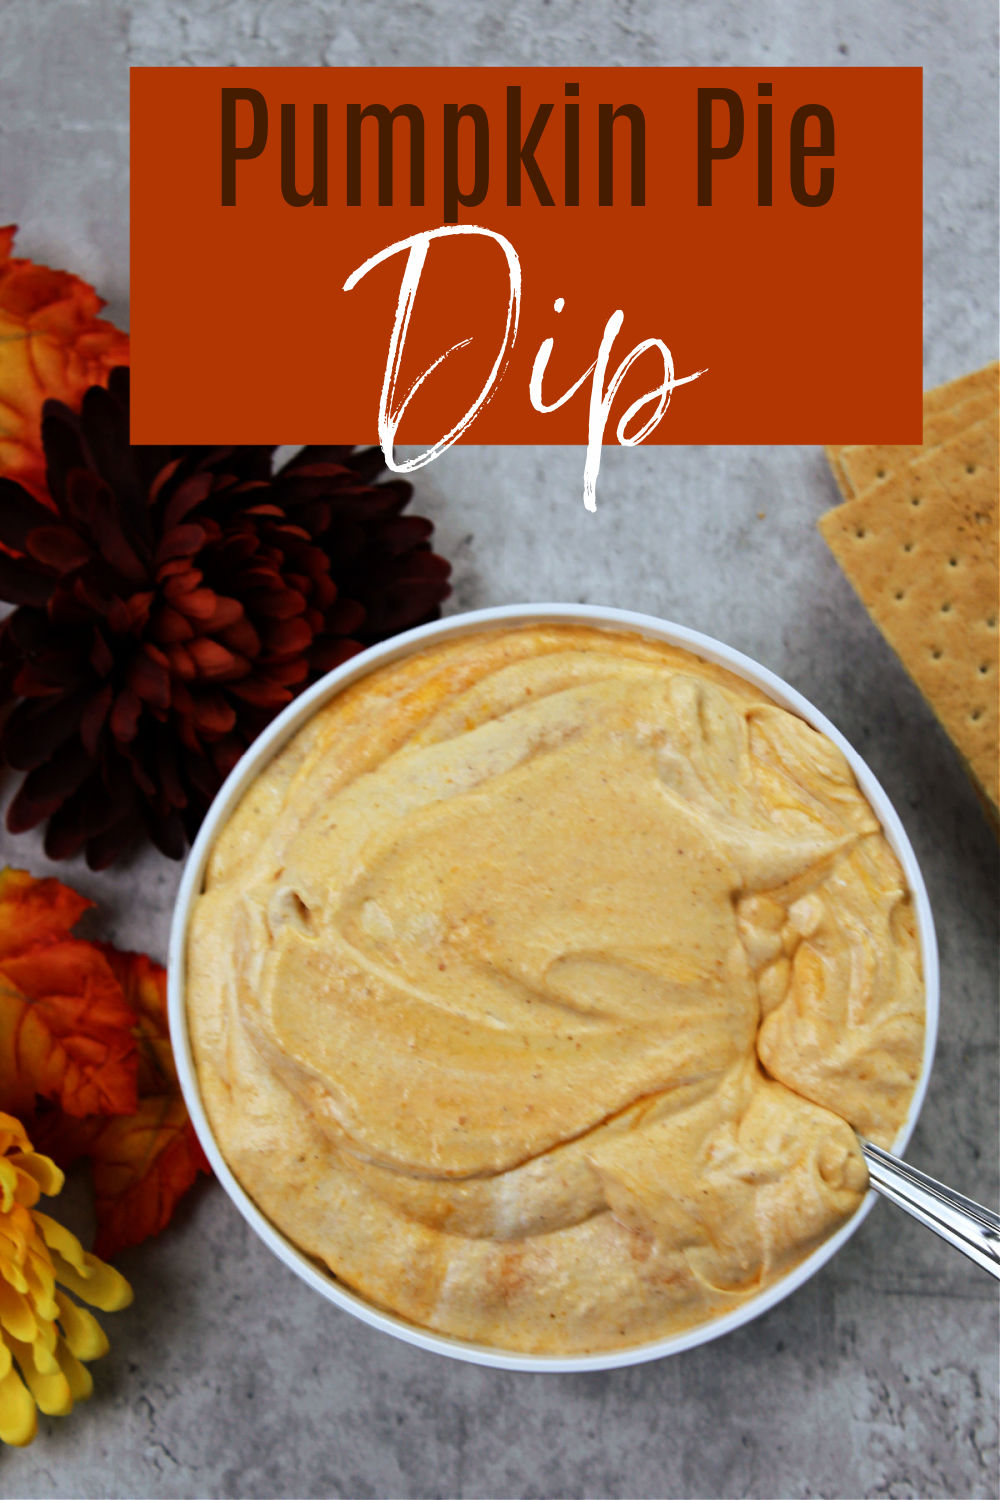 bowl of pumpkin pie dip with a spoon, flowers and crackers nearby.